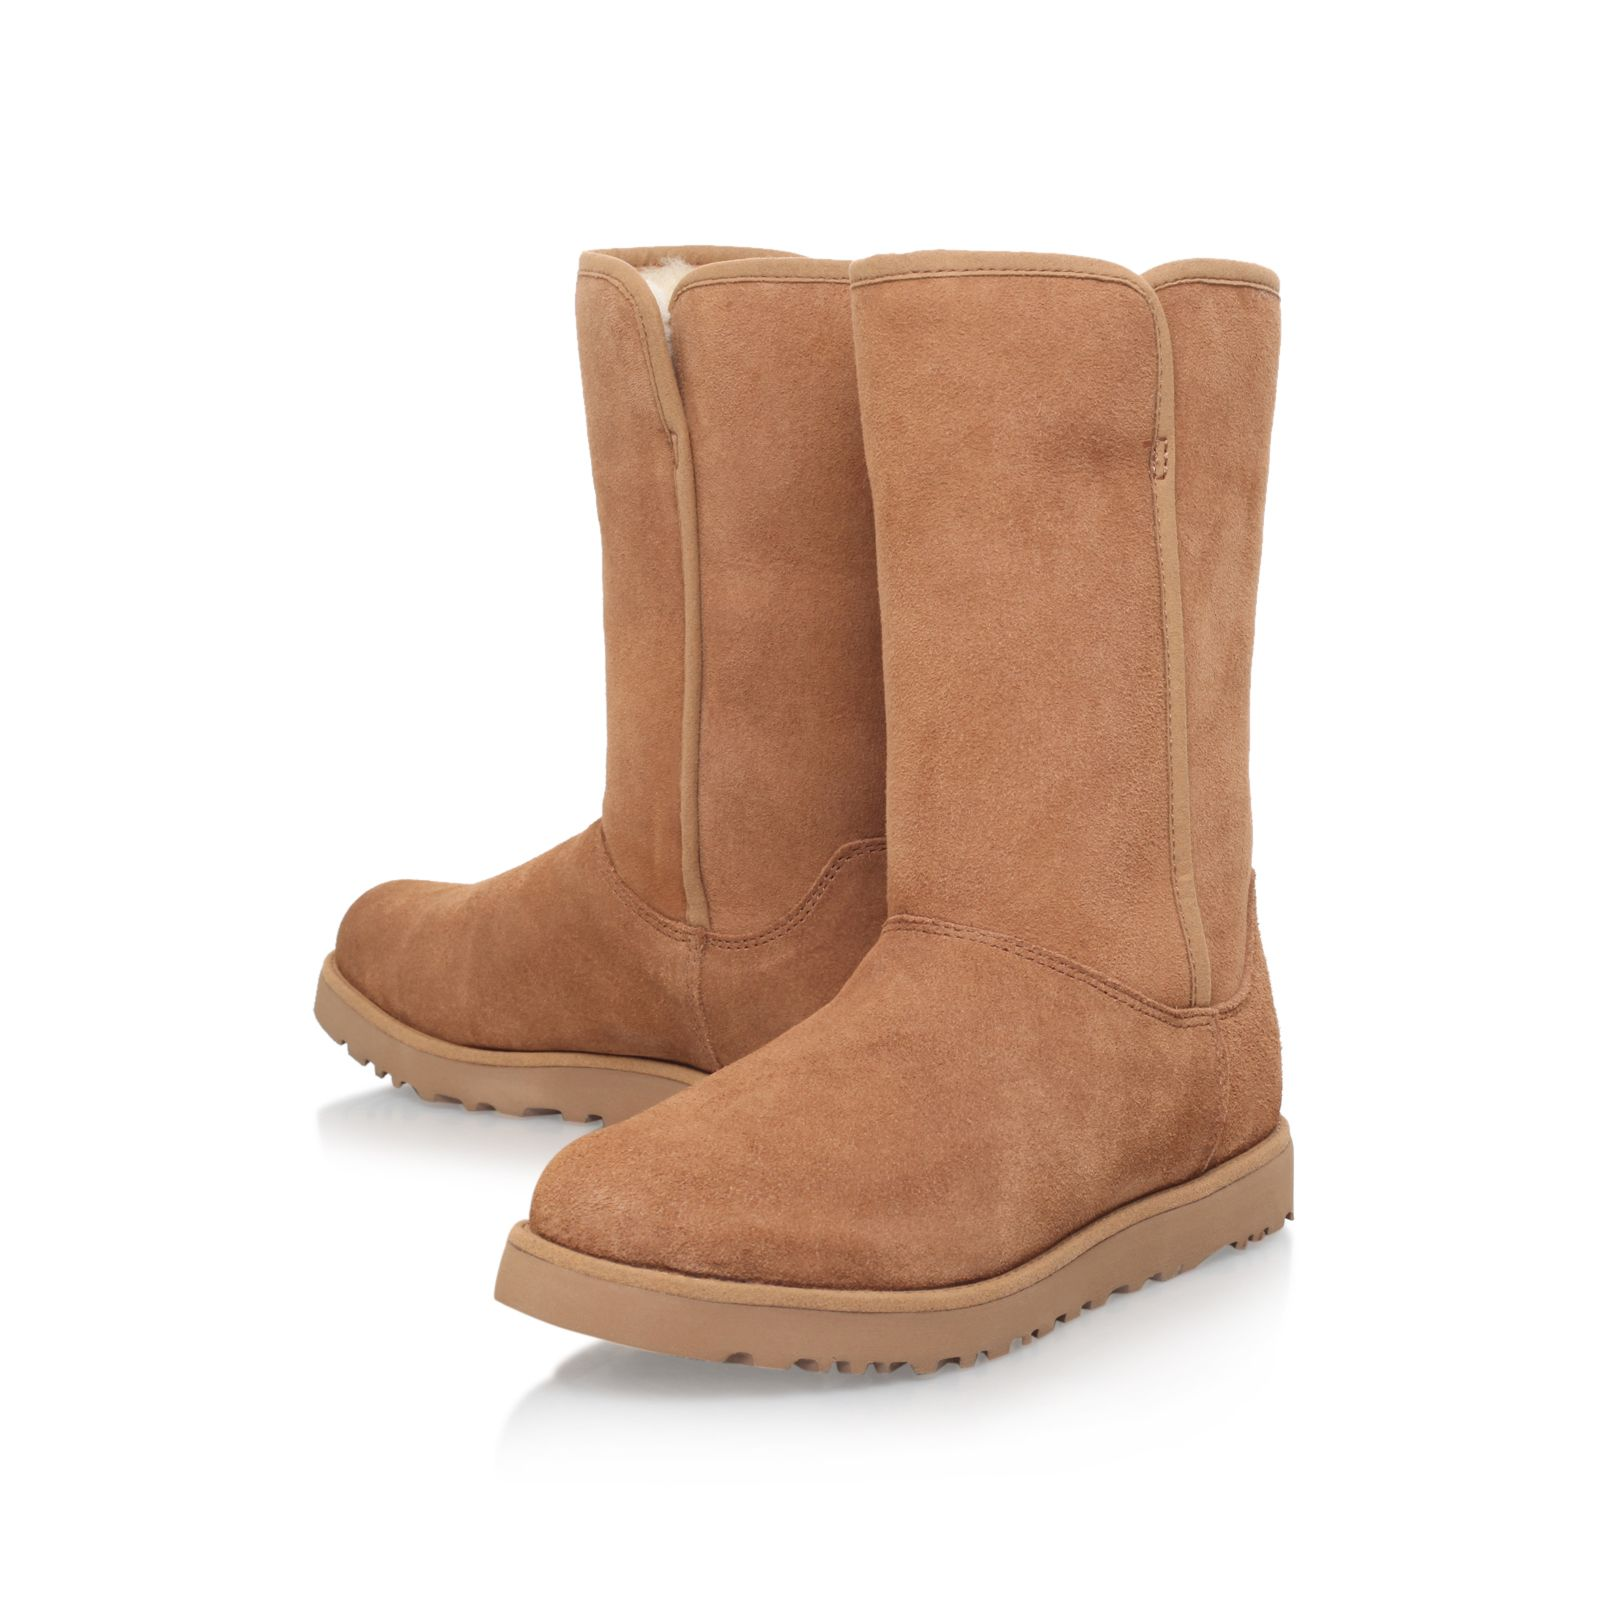 Holiday Deals on UGG Boots. Find a gift for everyone on your list this holiday season with DICK'S Sporting Goods holiday deals, including incredible Black Friday deals and Cyber Monday savings. UGG boots and footwear deliver classic style and luxe warmth for men, women and kids.